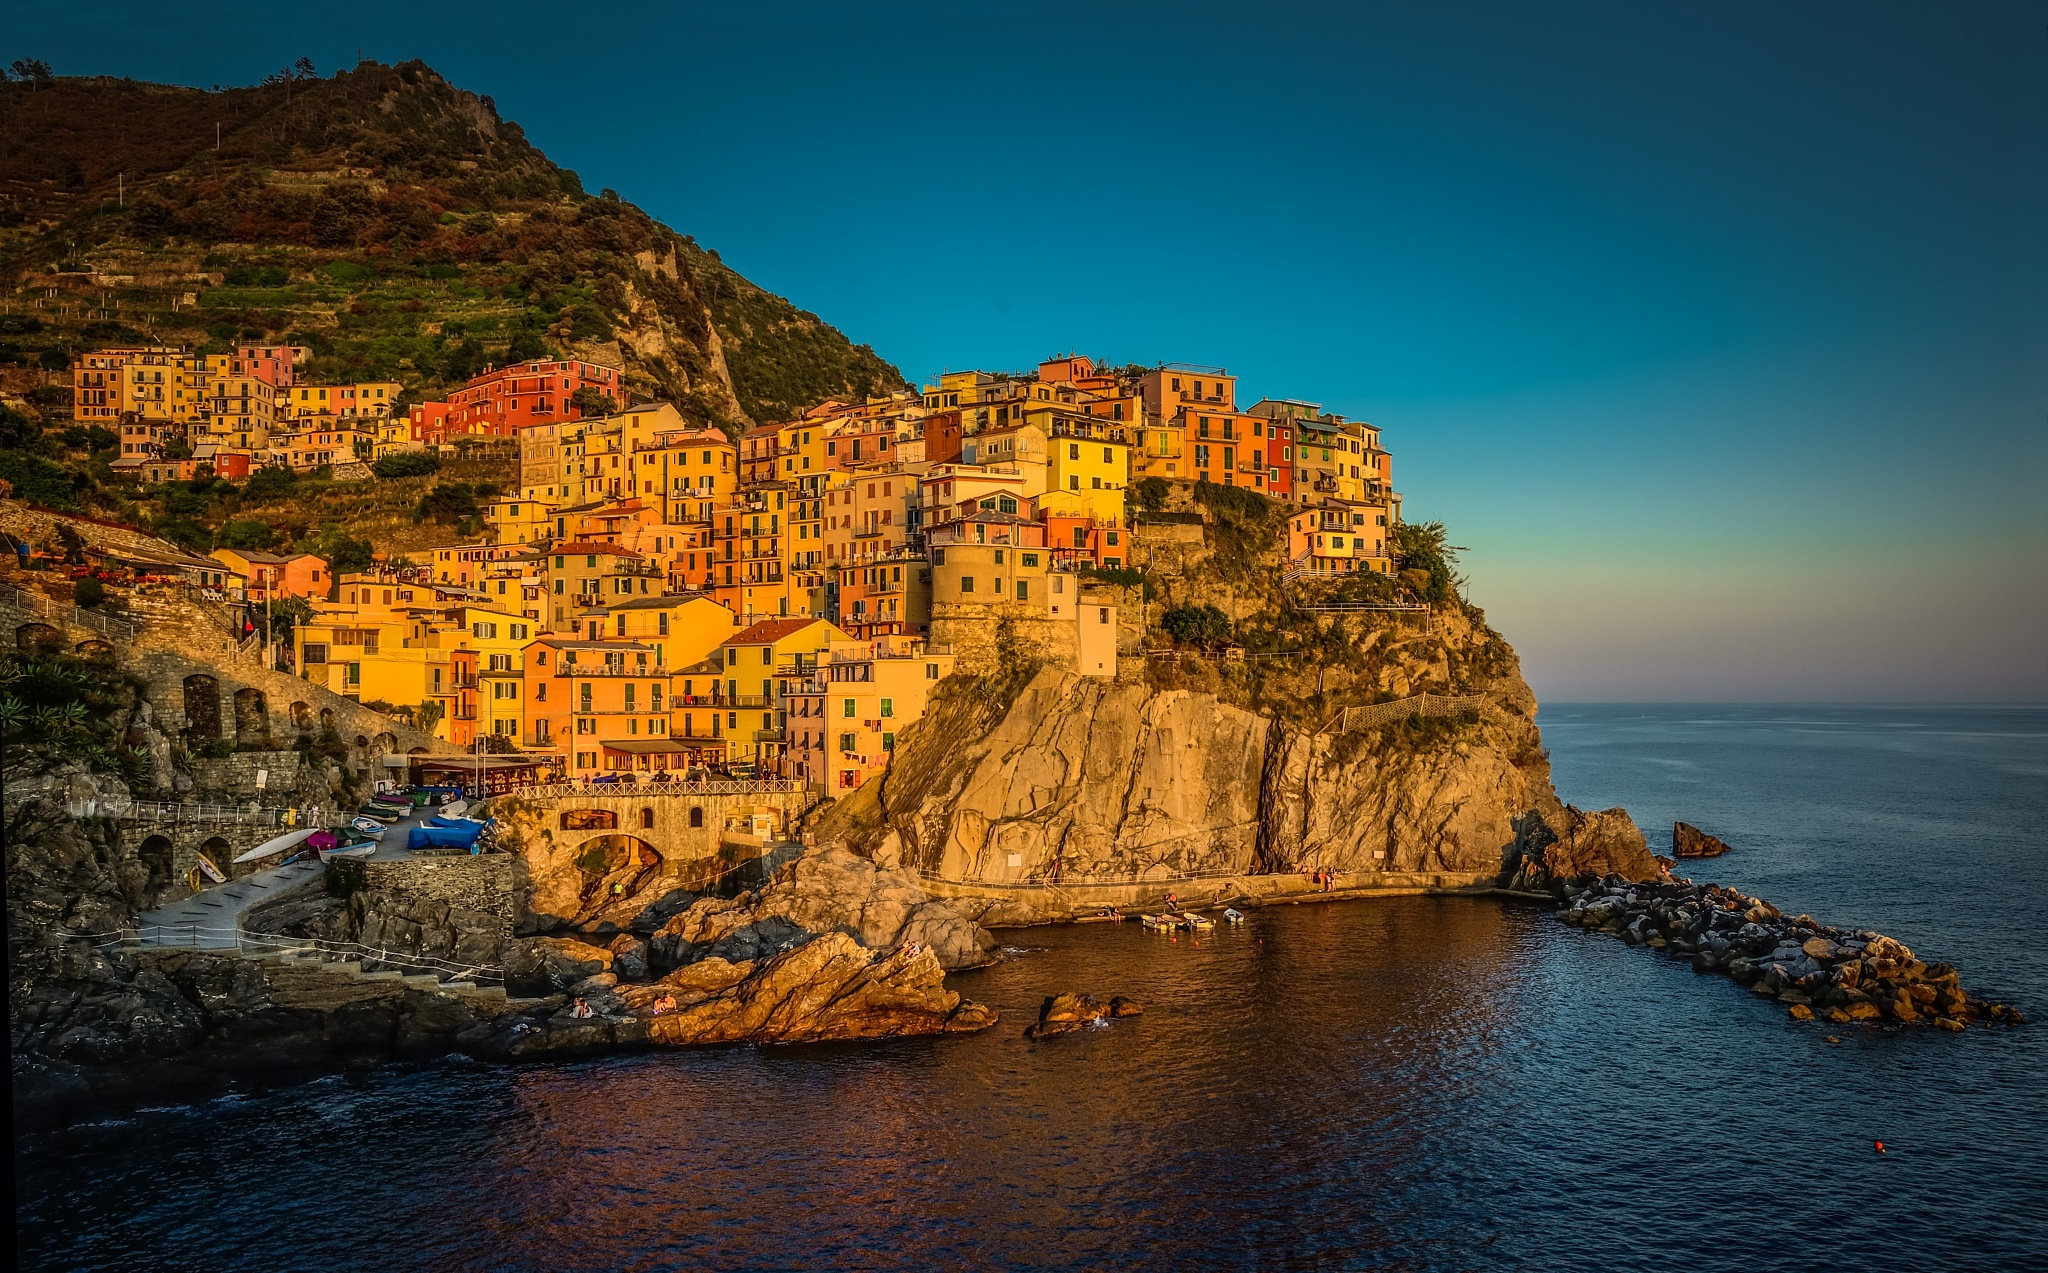 Sunset over Manarola, Cinque Terre, Italy by nickbrisbane